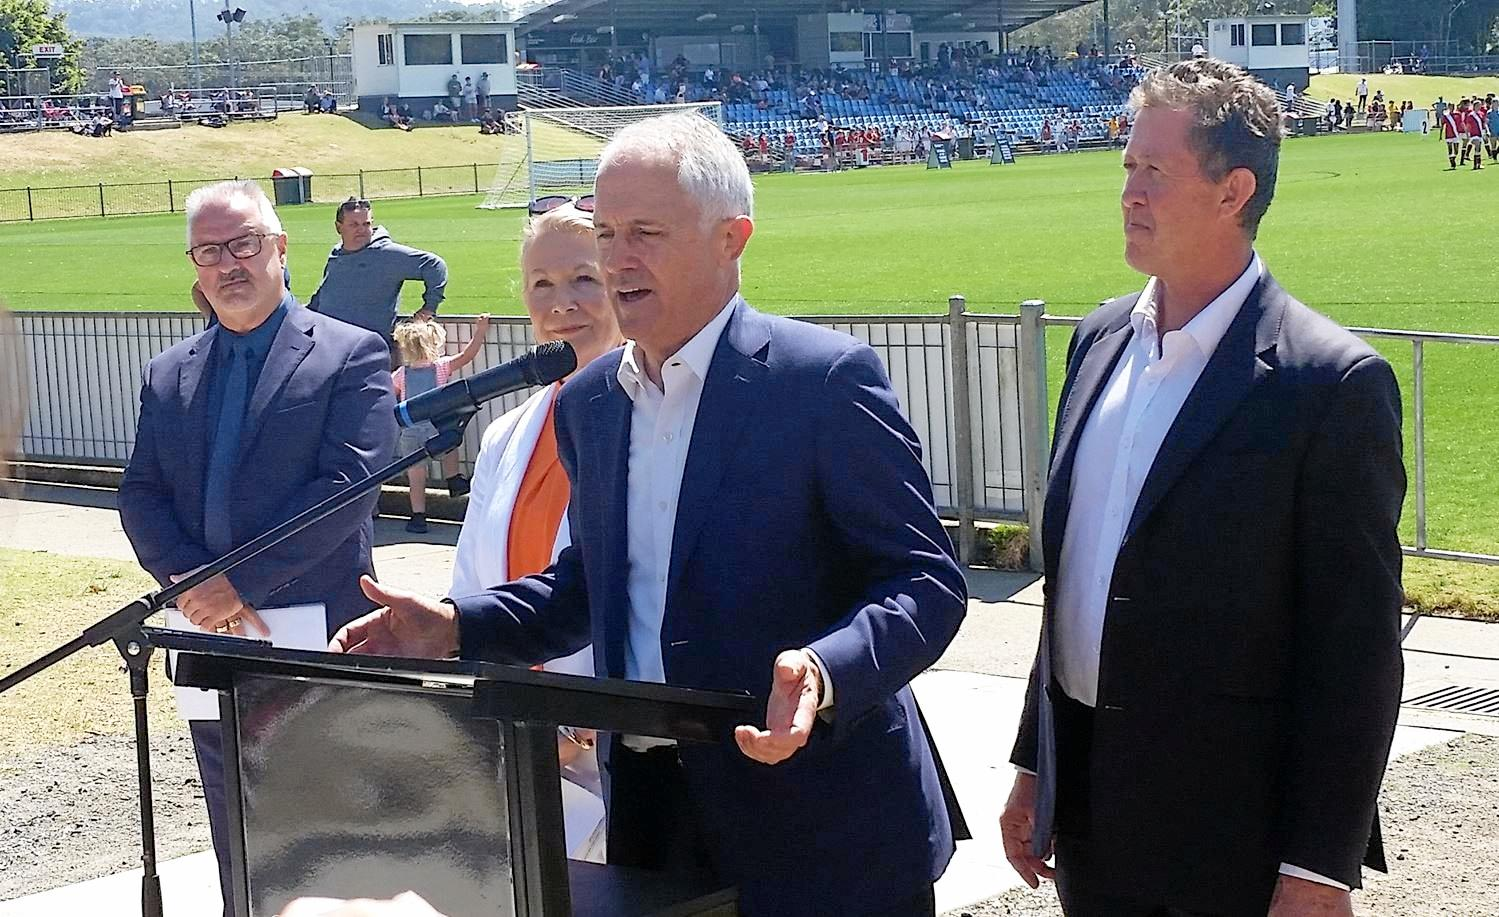 Mr Hartsuyker with Malcolm Turnbull at the funding announcement for the $13 million upgrade to C.ex Coffs Stadium. Mr Hartsuyker said he has informed the Prime Minister of his decision to leave politics.